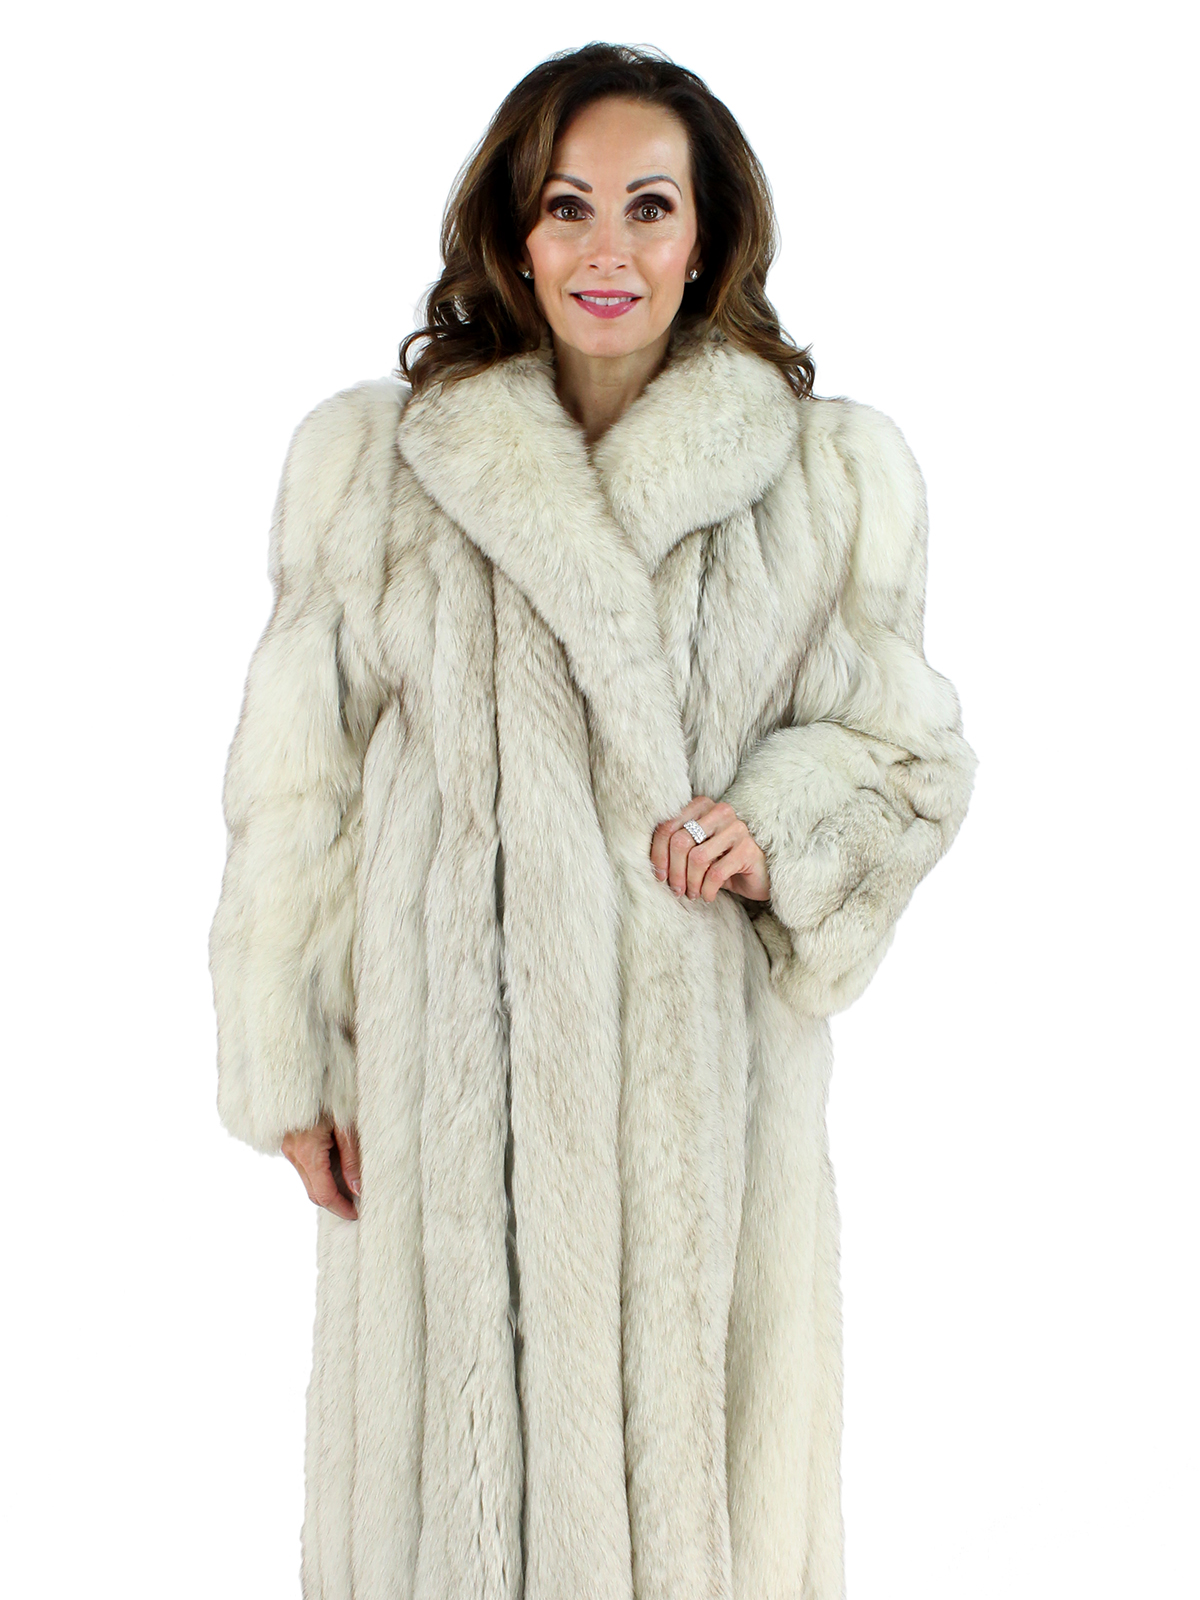 Saga Woman's Blue Fox Fur Coat